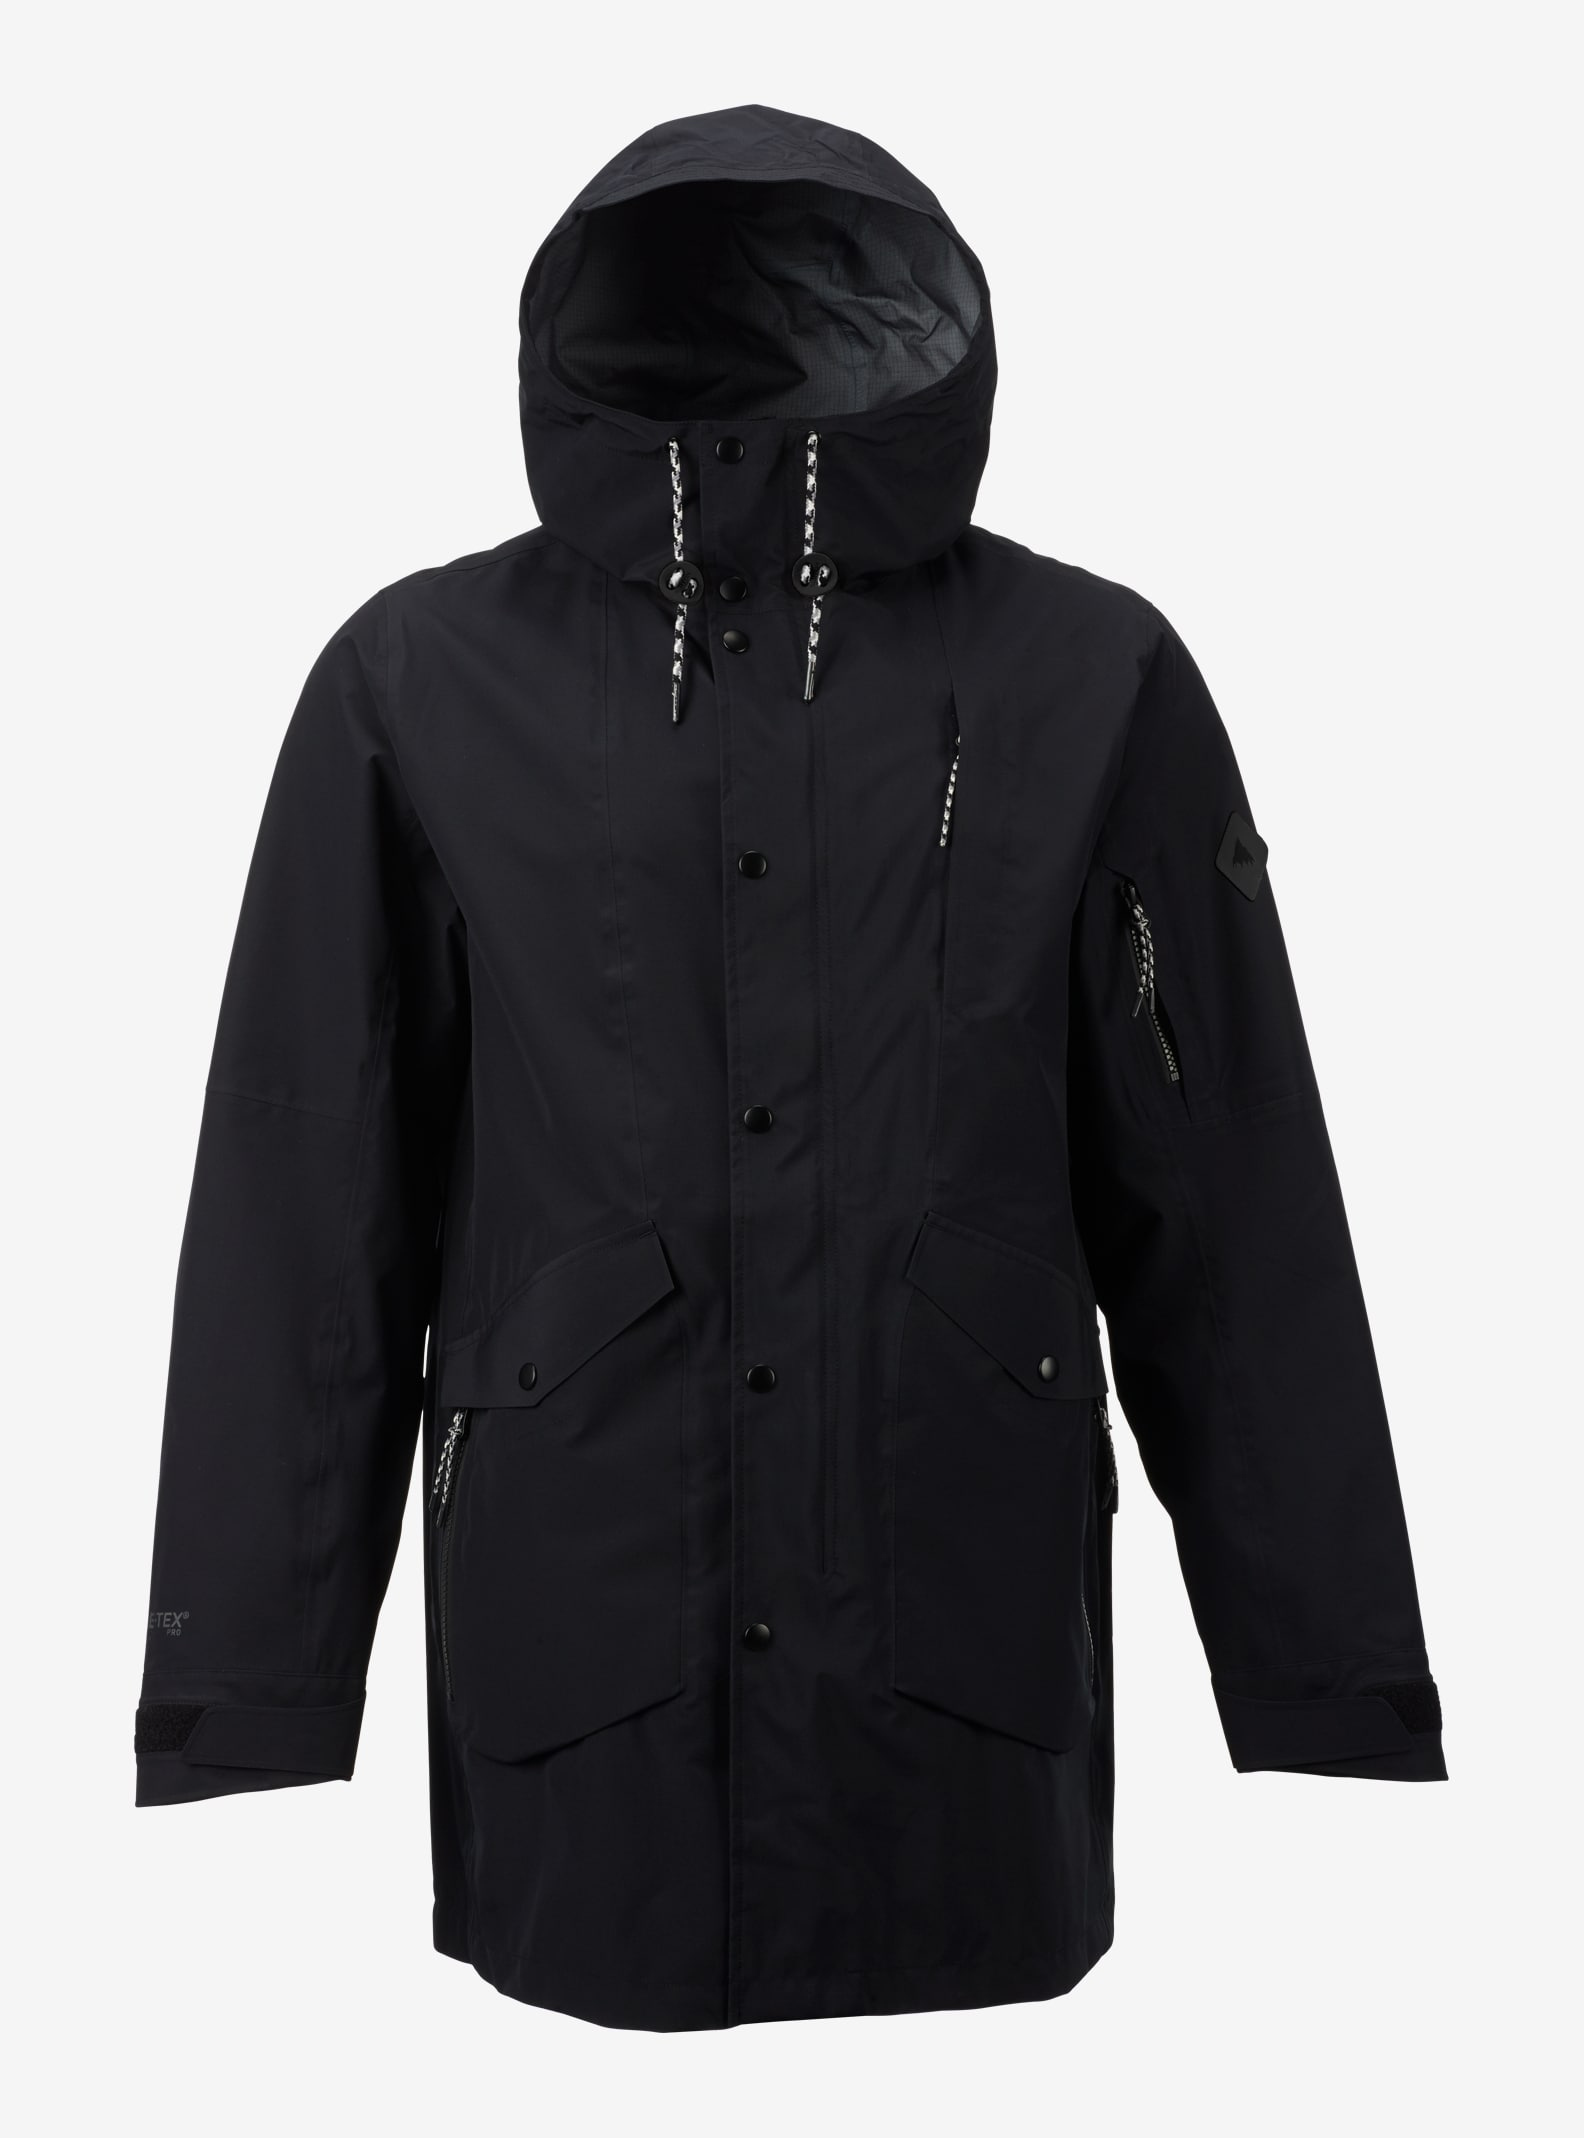 Burton GORE-TEX® 3L B-17 3L Rain Jacket shown in True Black